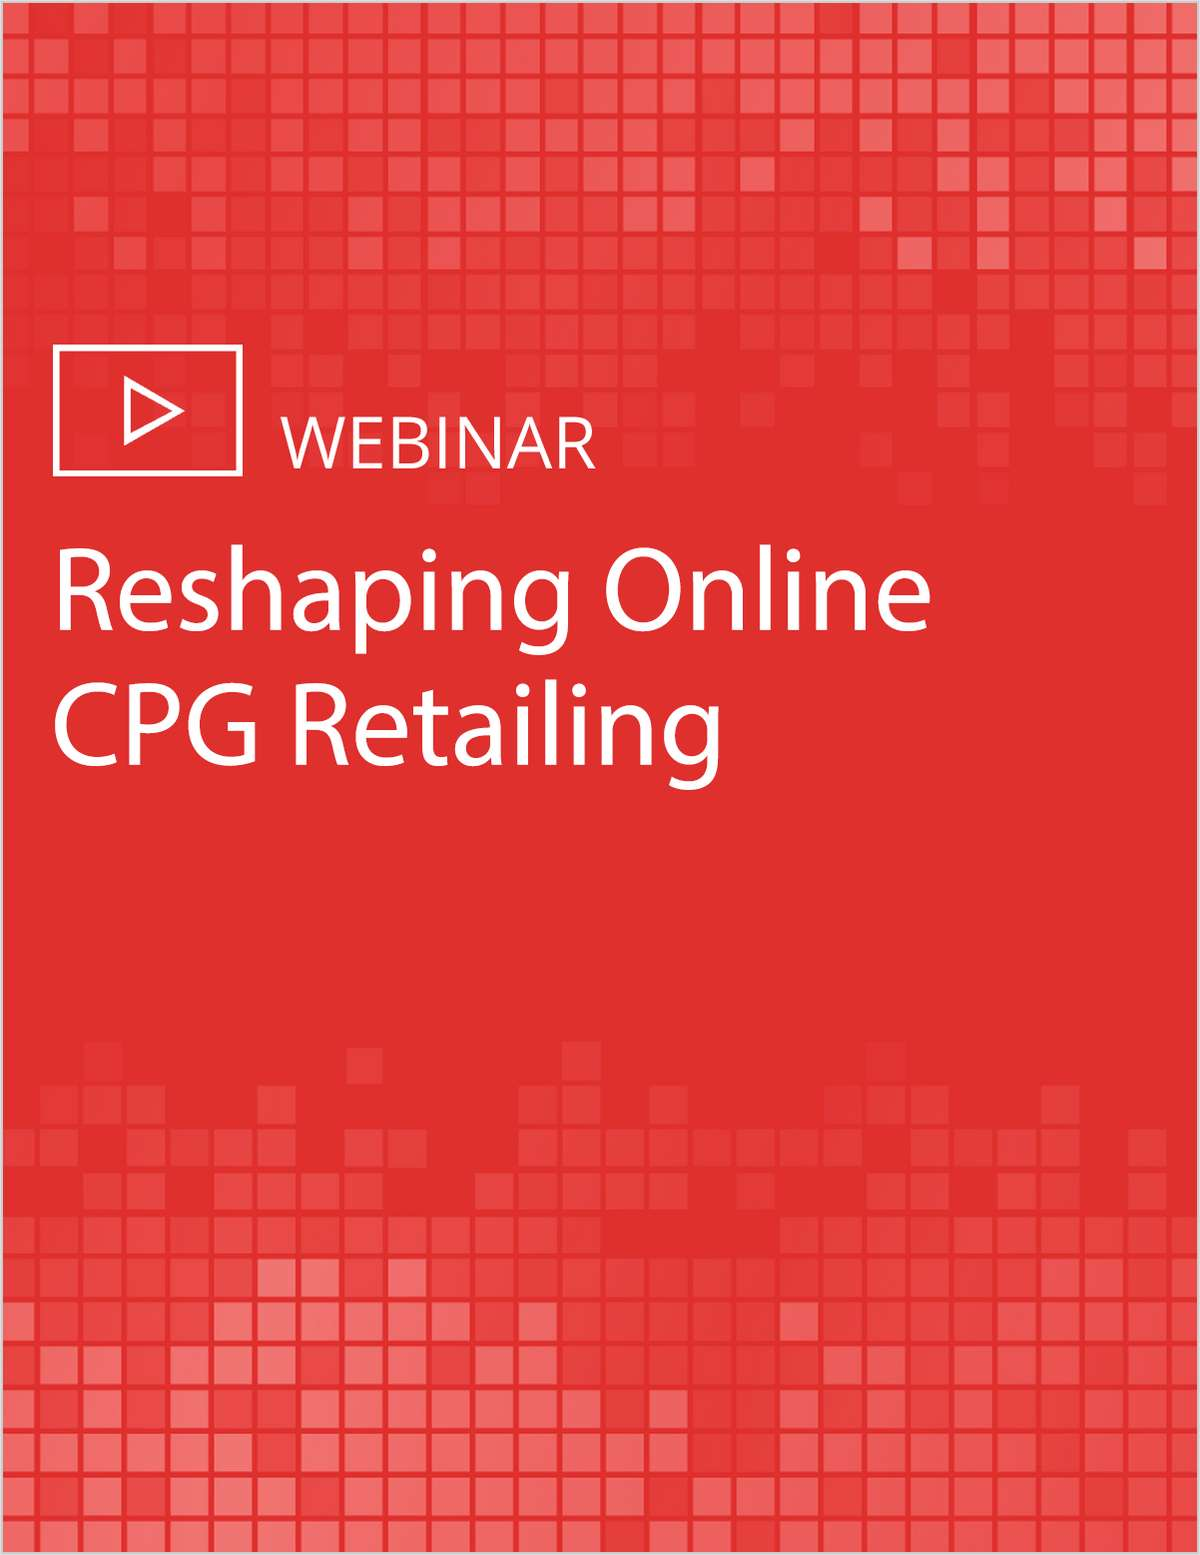 Reshaping Online CPG Retailing